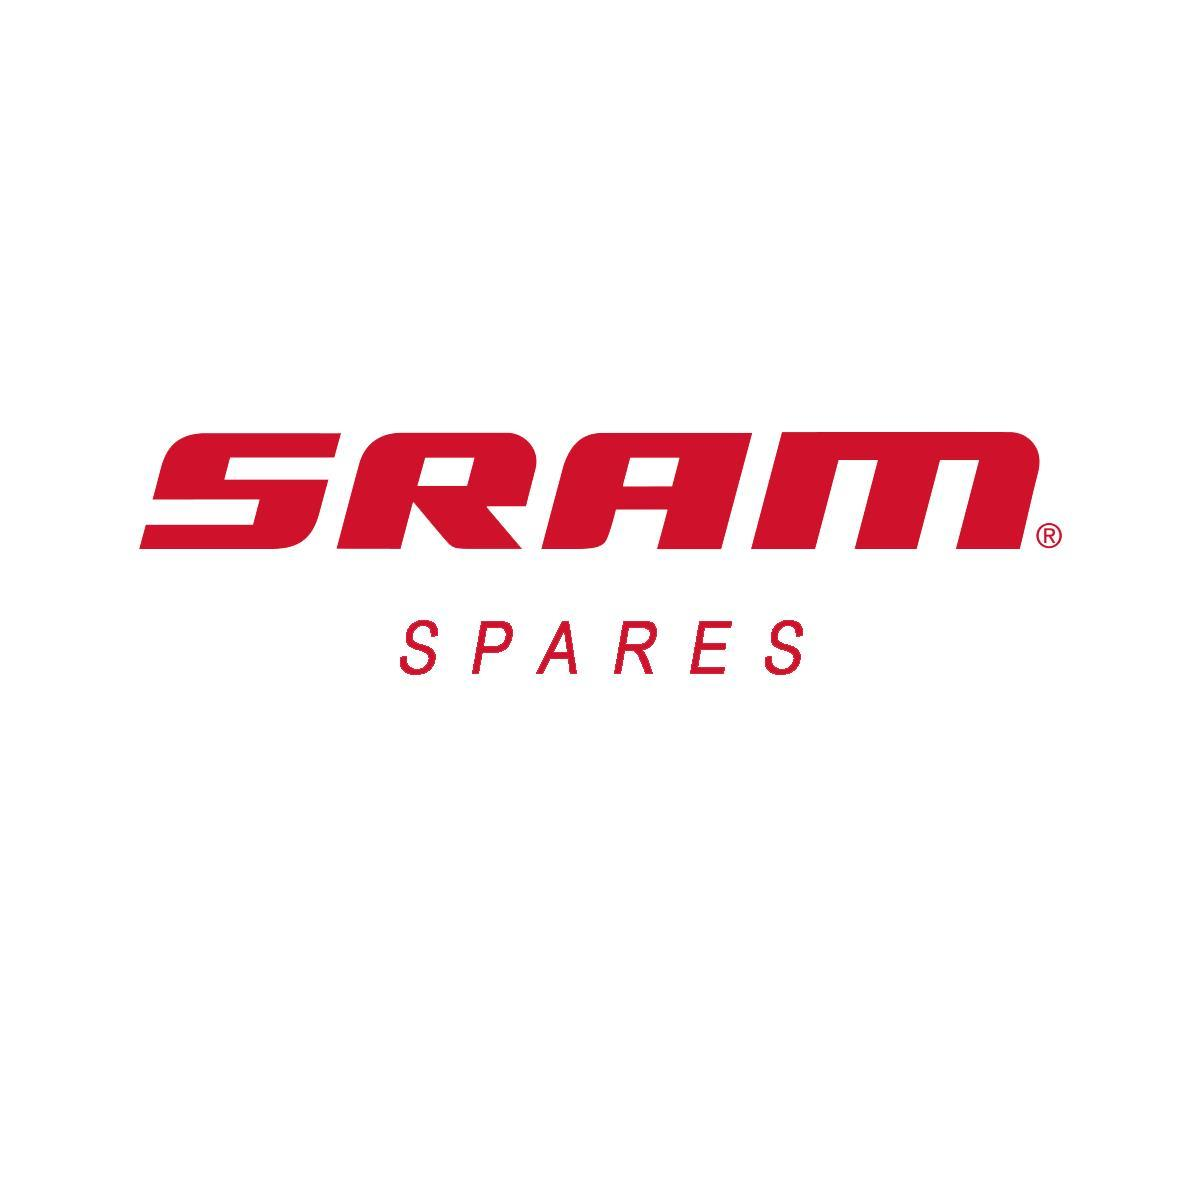 Sram Spare - Wheel Spare Parts Hub Bearing Set Rear Double Time Includes1-6903/61903 & 1-63803d28) - X0 Hubs/rise 60 (b1)/roam 30/roam 40/roam 50/60 (b1)/rail 40